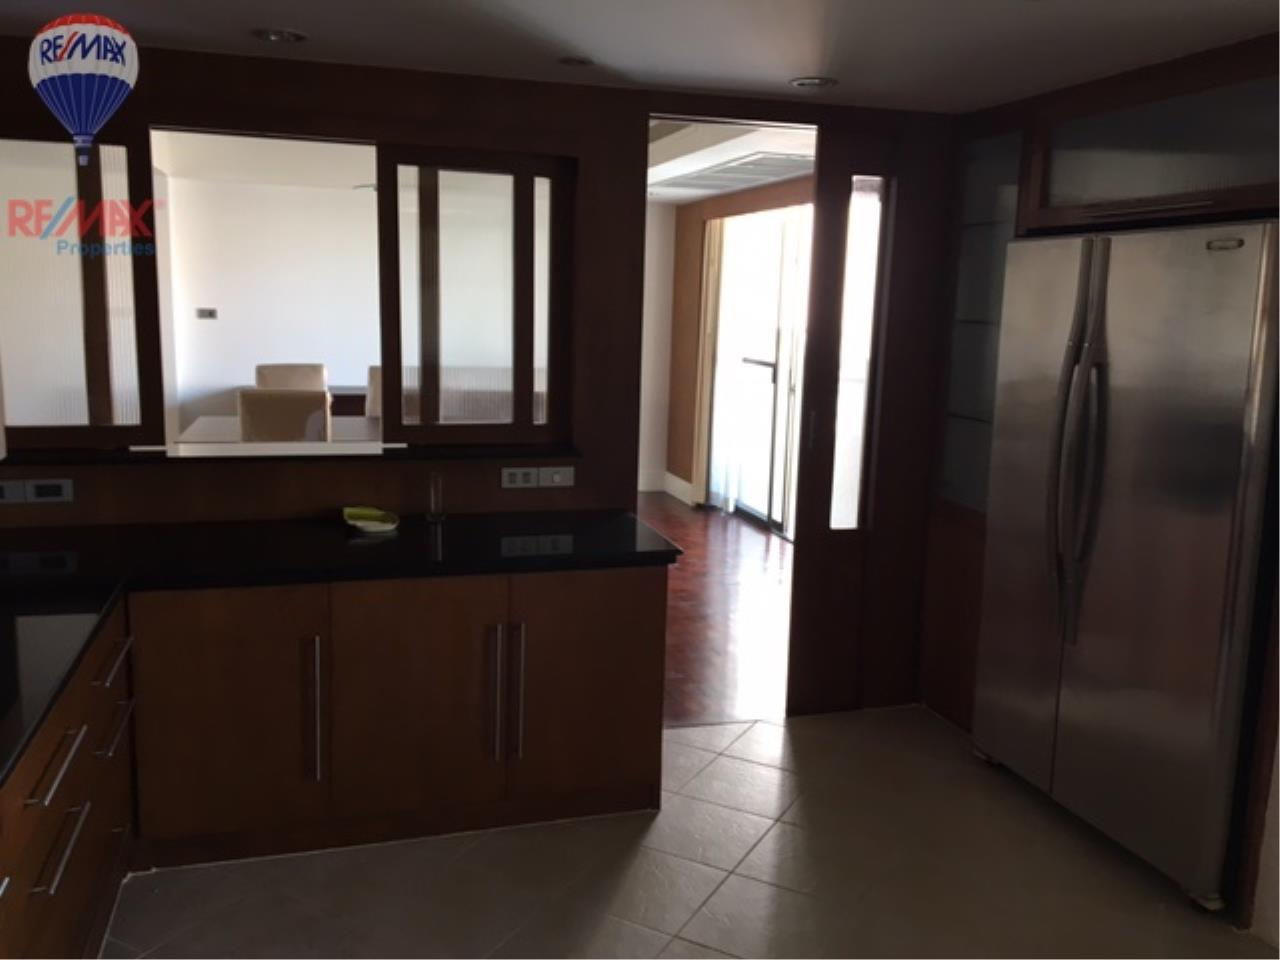 RE/MAX Properties Agency's 4 Bedroom 330 Sq.m for rent in Soi 39 7